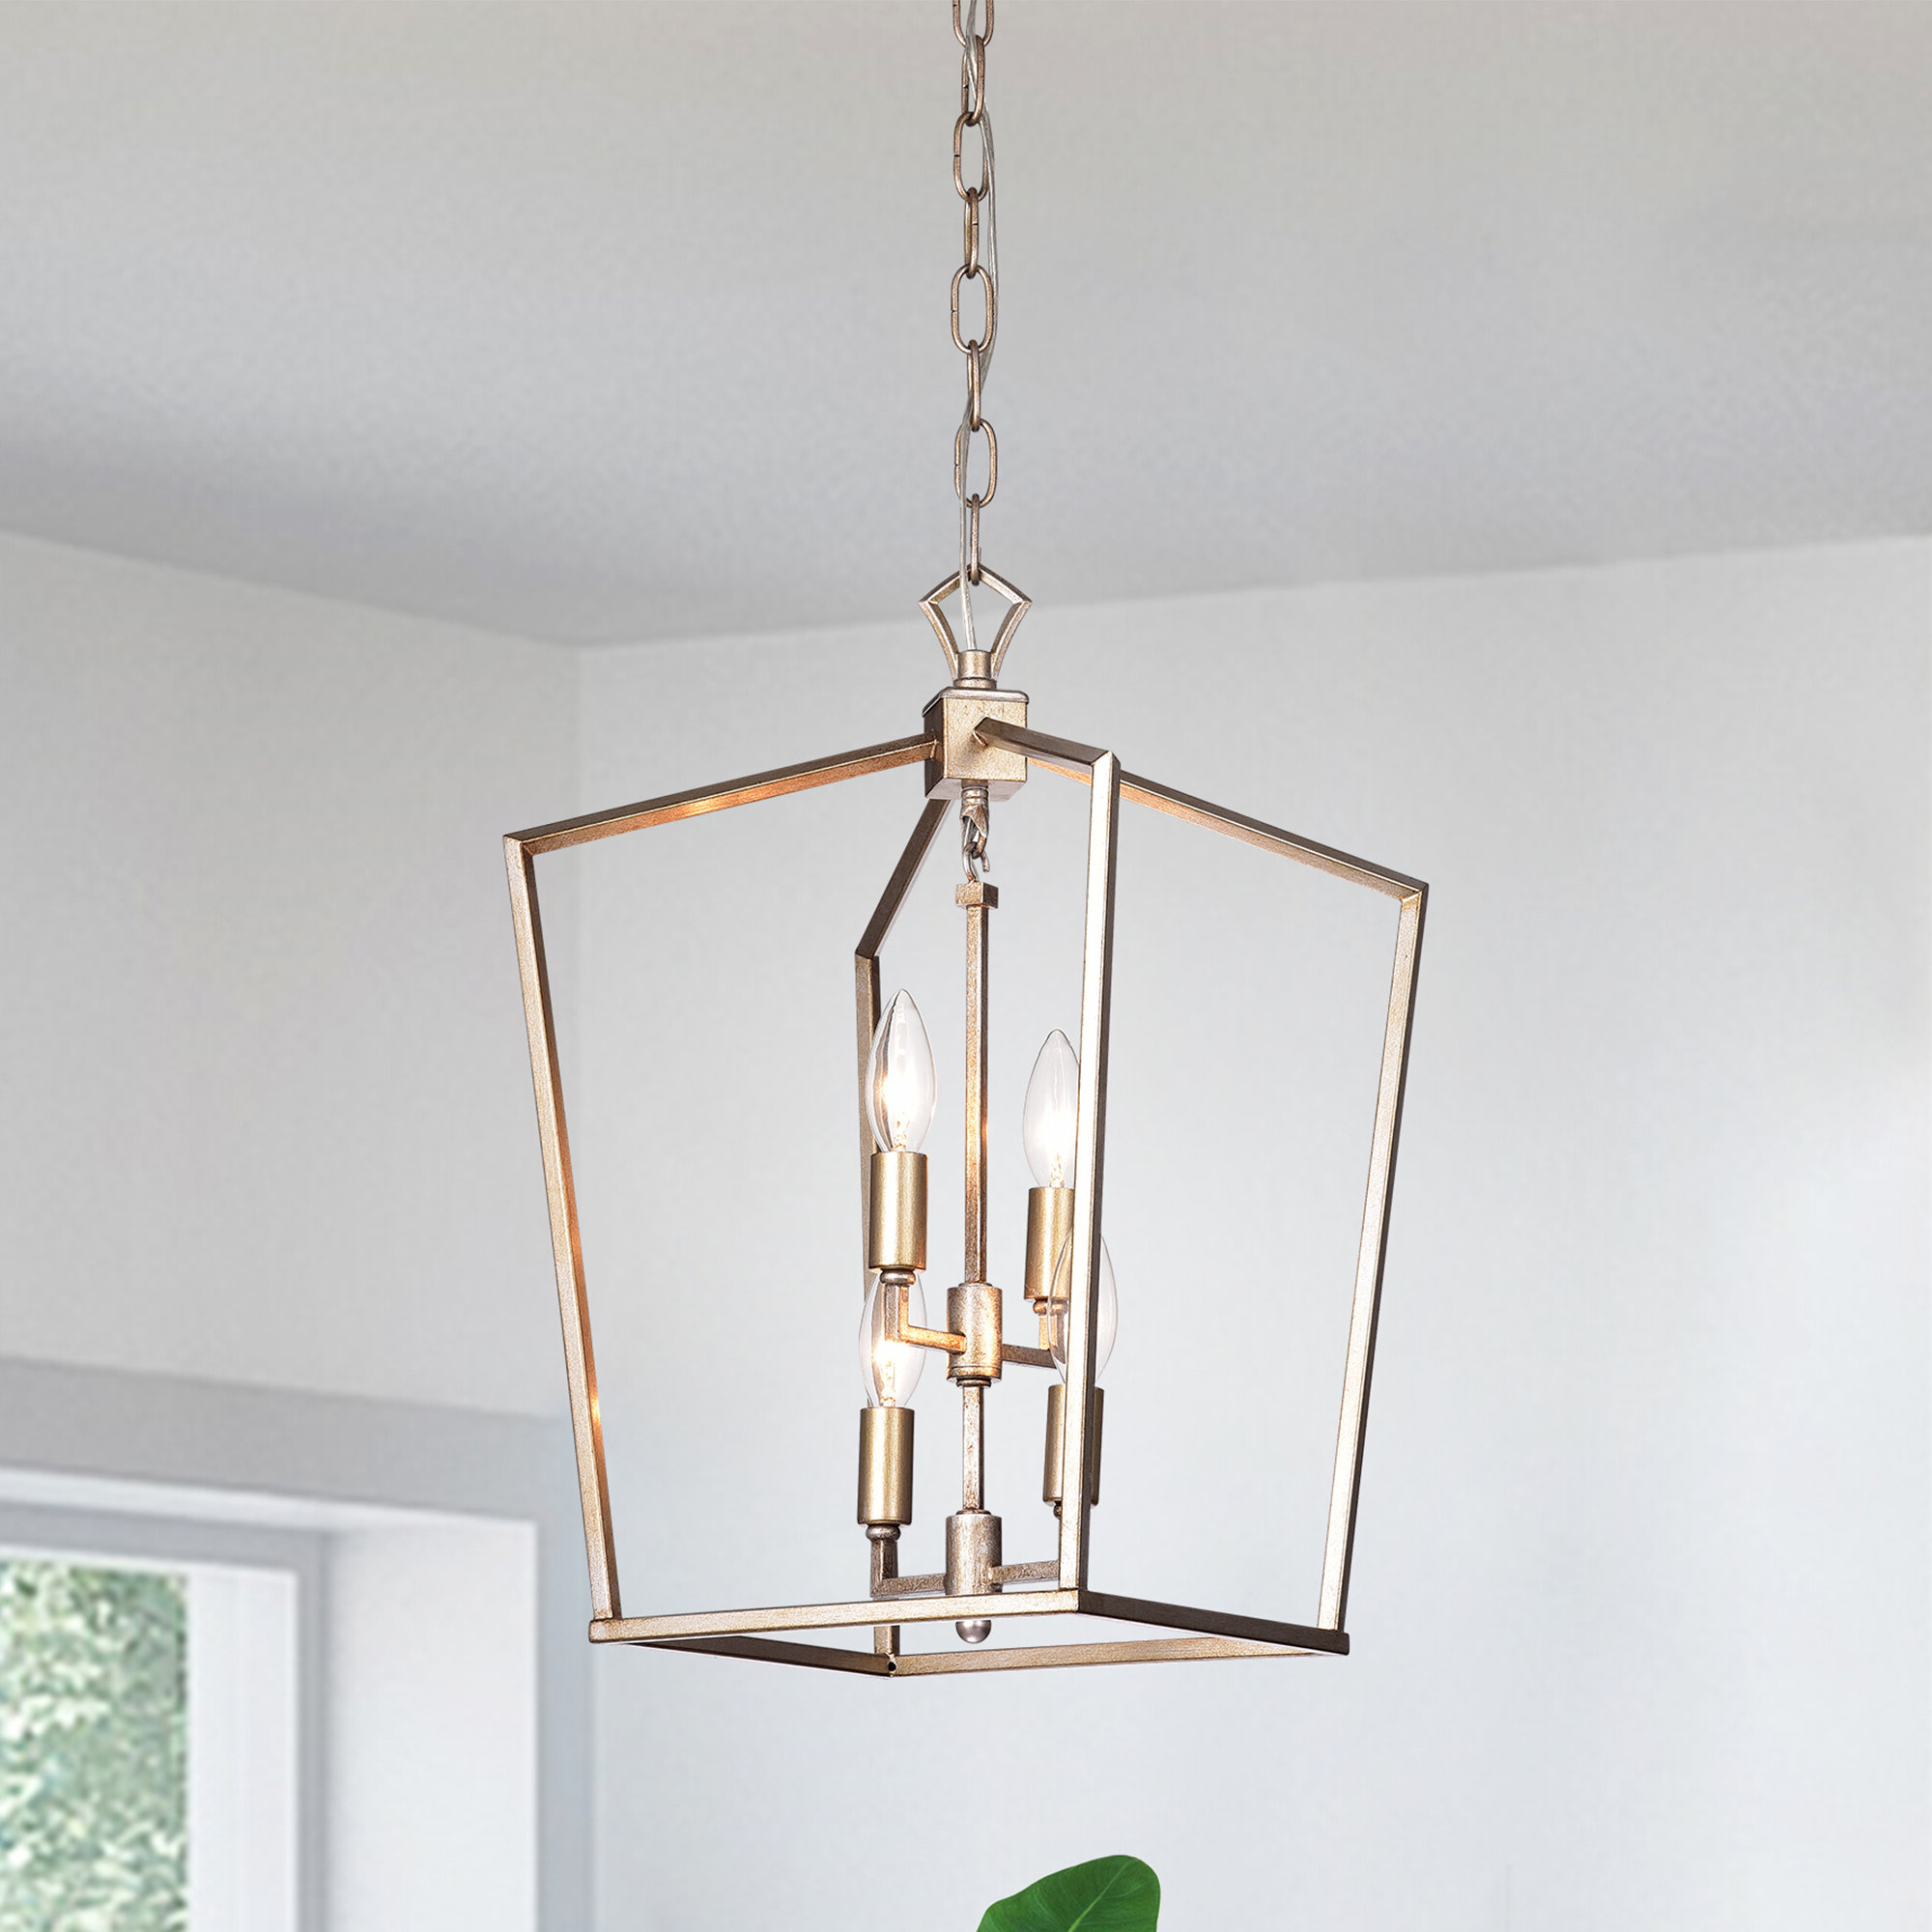 Most Up To Date Tiana 4 Light Geometric Chandeliers Intended For Massasoit Metal 4 Light Square Chandelier (View 8 of 25)